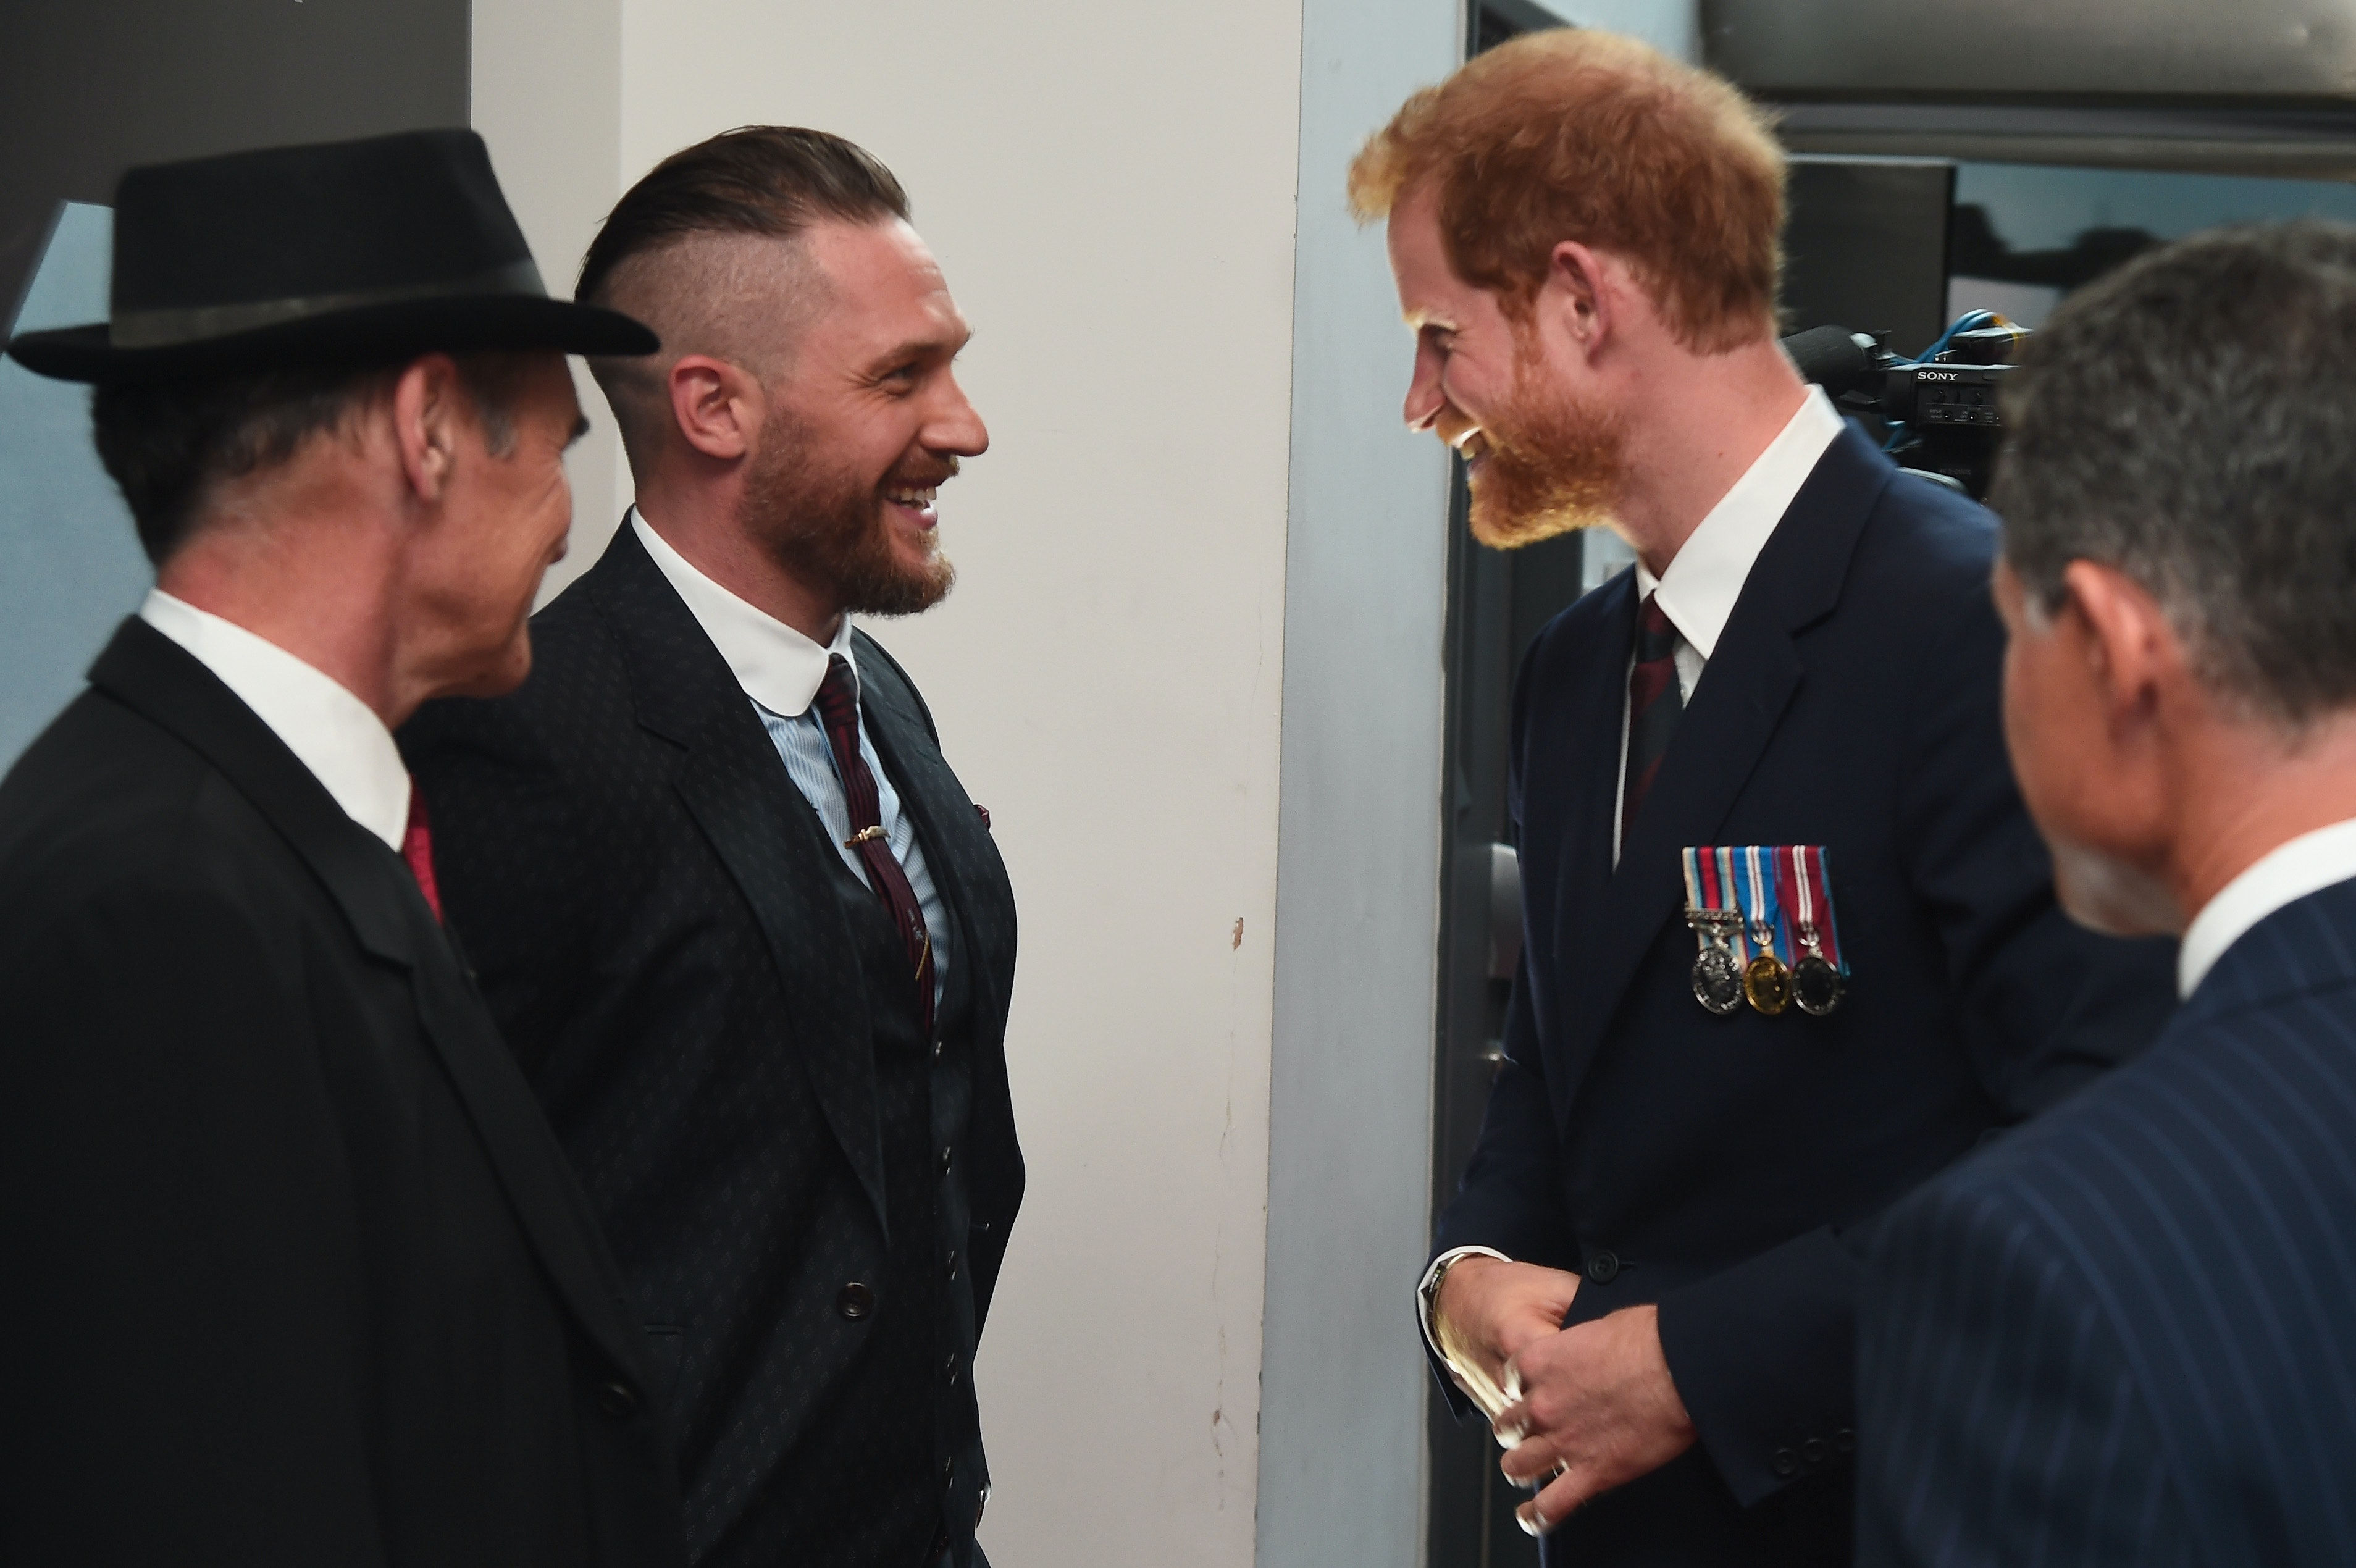 Tom Hardy Royal Wedding.Tom Hardy Is At The Royal Wedding His Friendship With Prince Harry